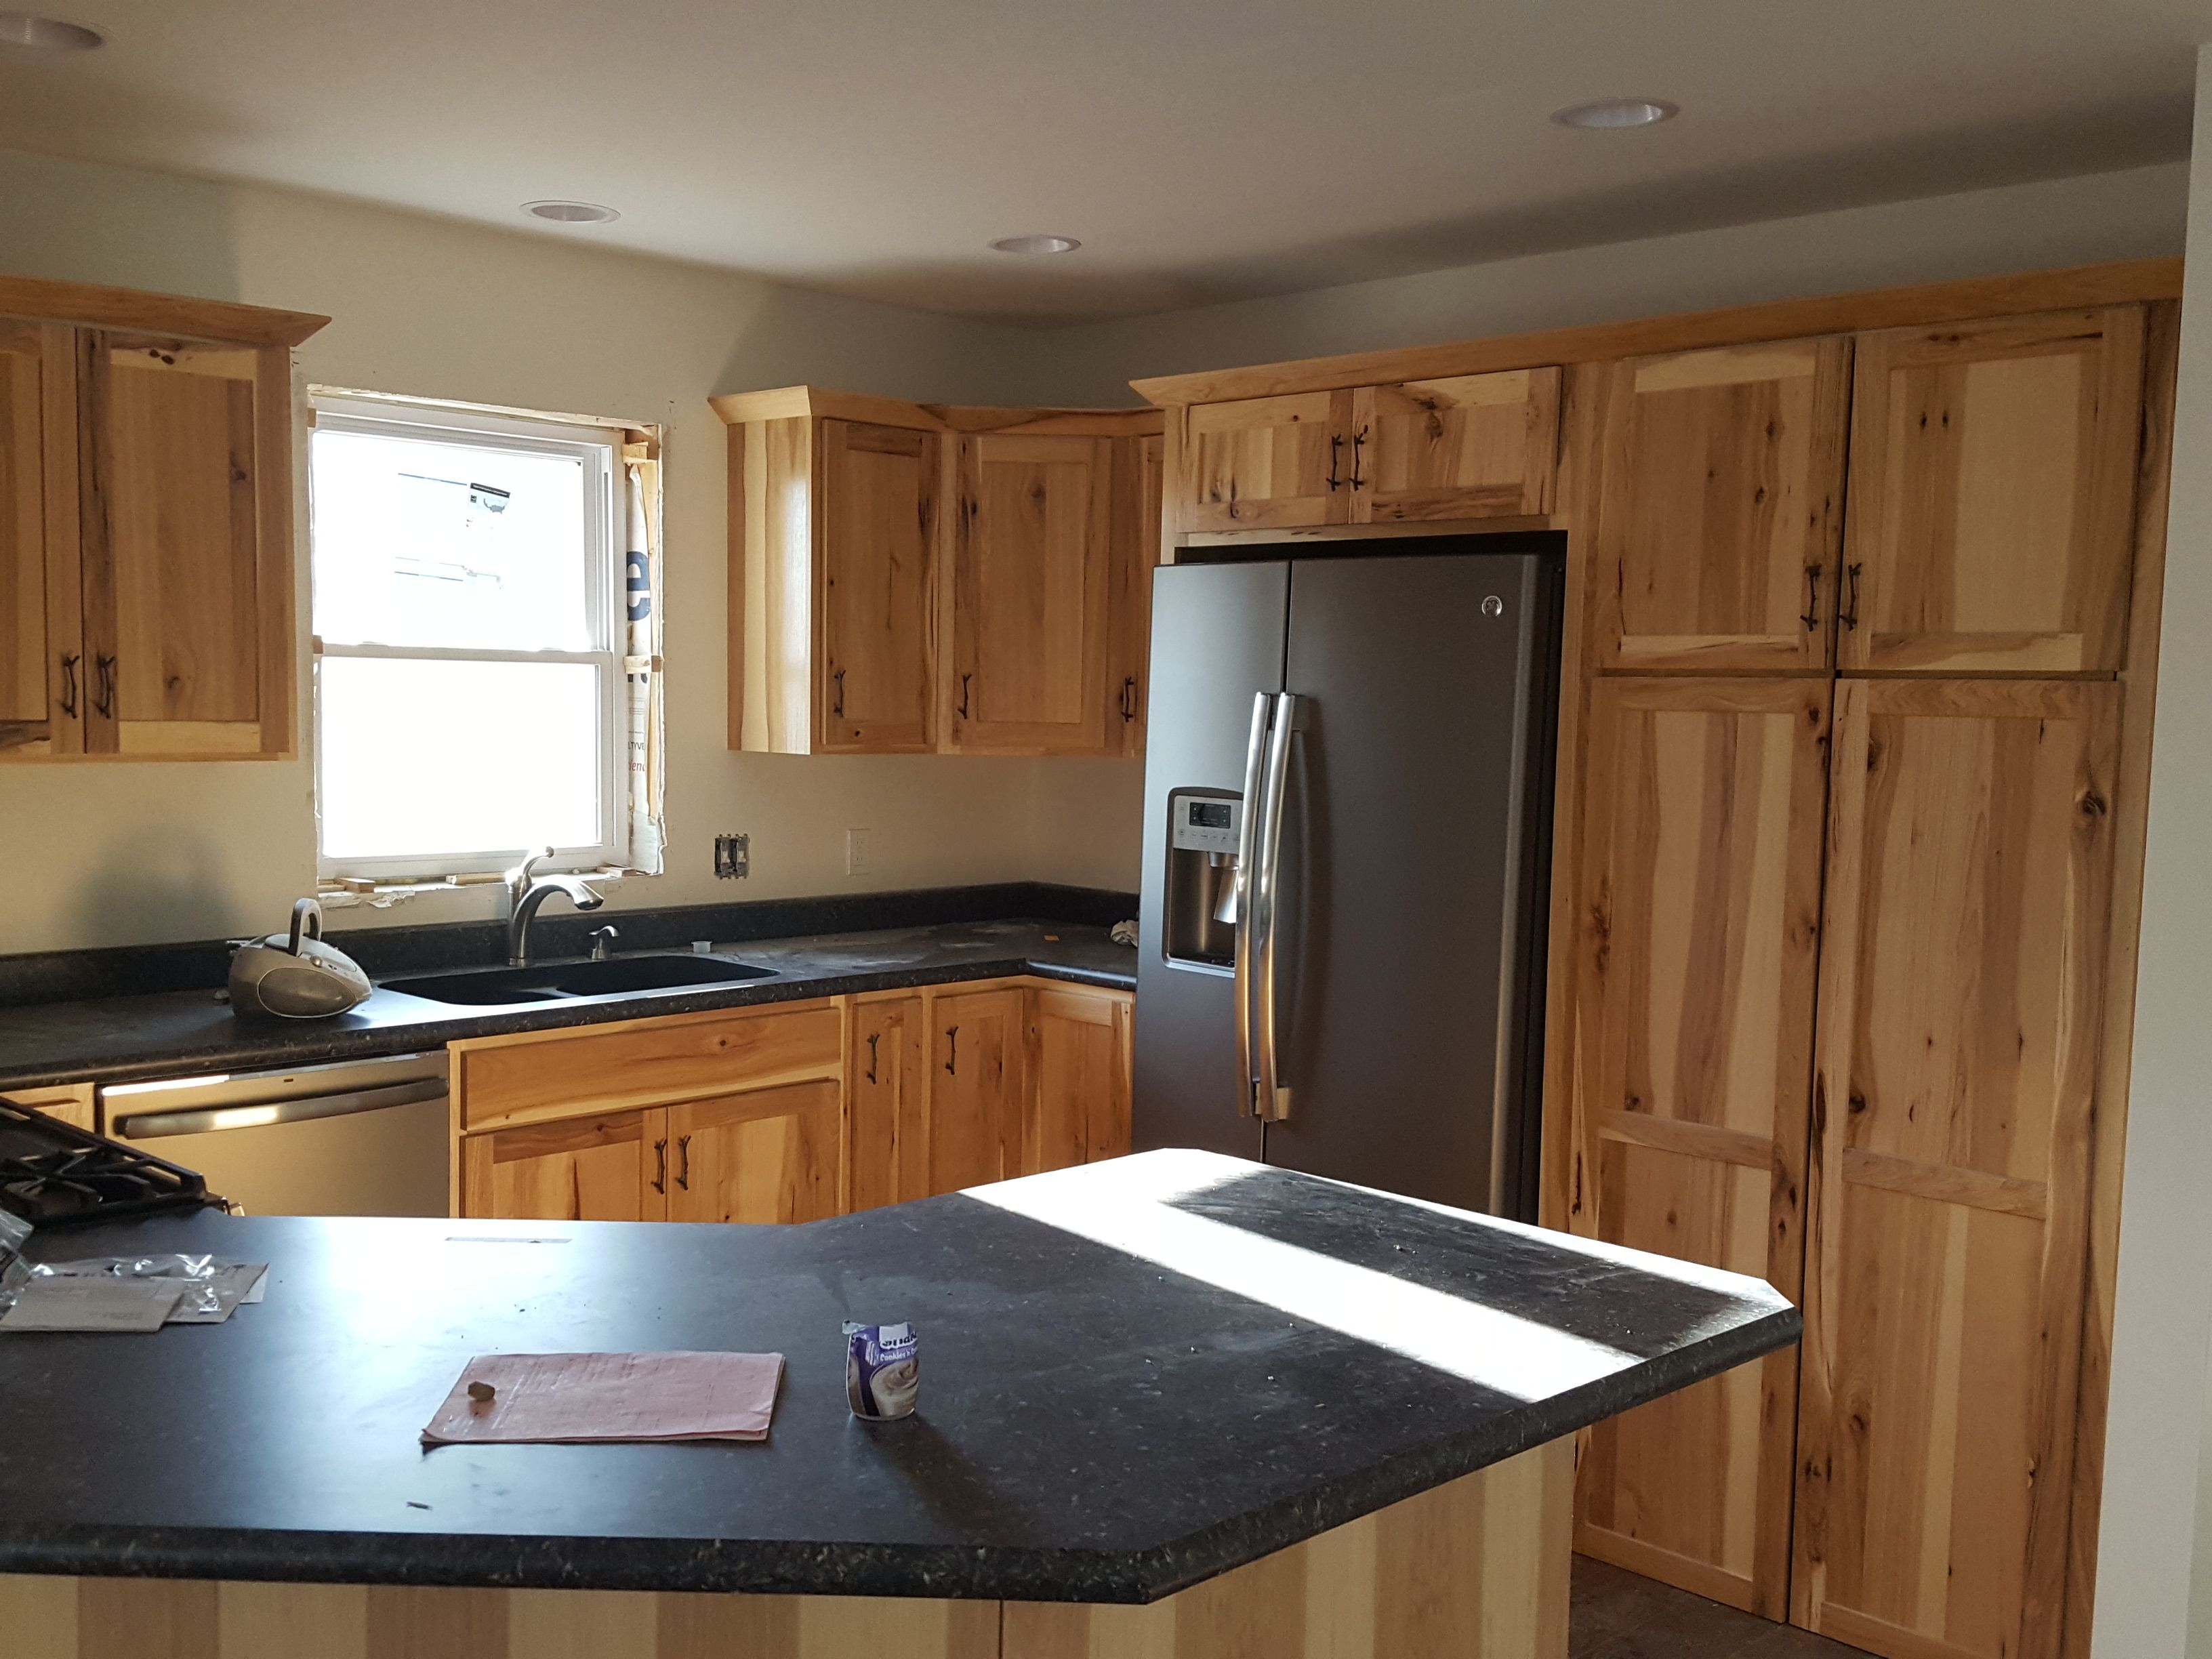 Denver Hickory Kitchen Cabinets Rustic Hickory Cabinets Black Laminate Countertops Ge